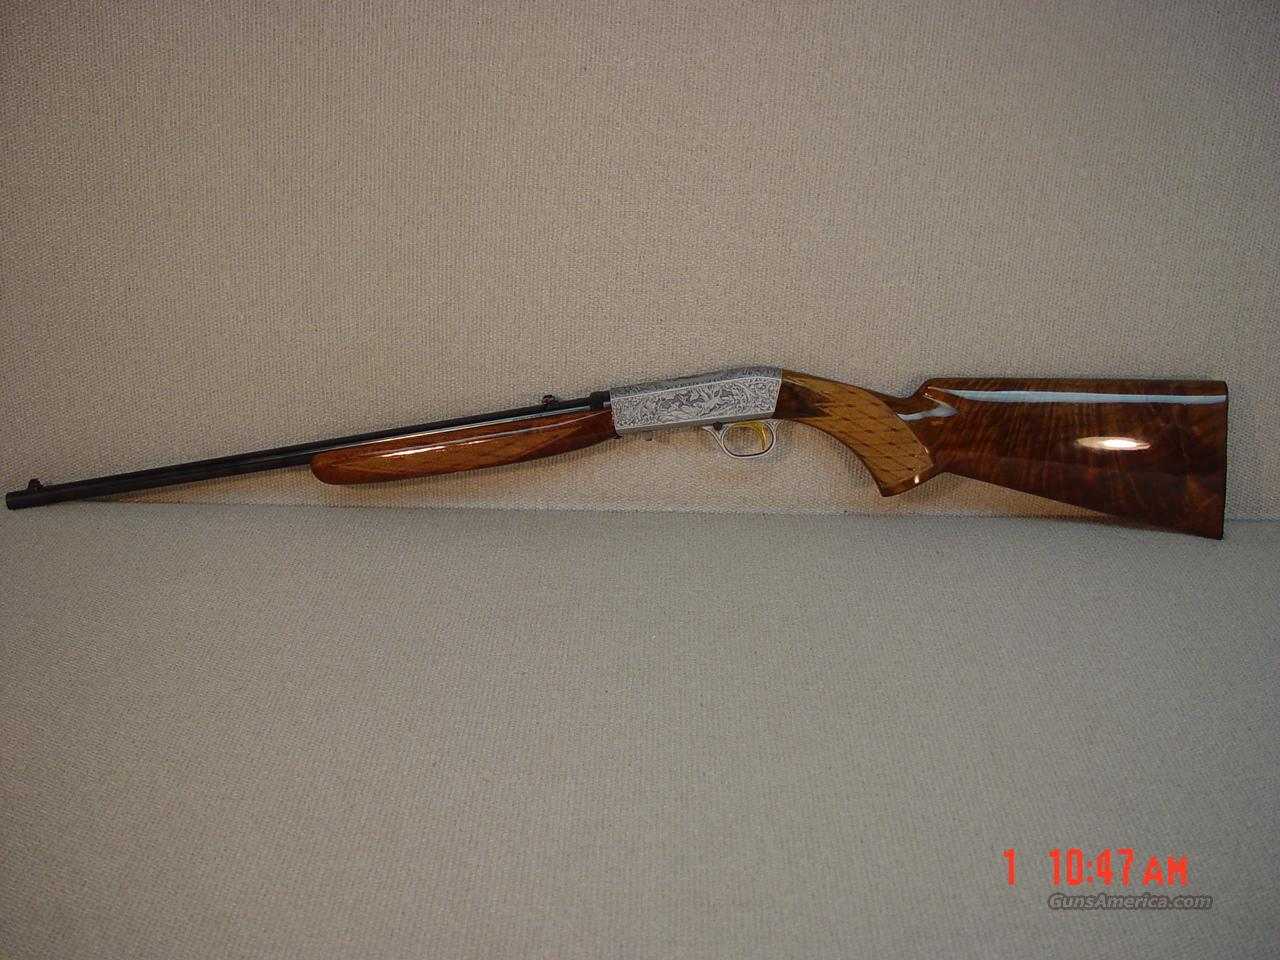 BROWNING BELGIUM GRADE III SEMI-AUTOMATIC 22LR  Guns > Rifles > Browning Rifles > Semi Auto > Hunting